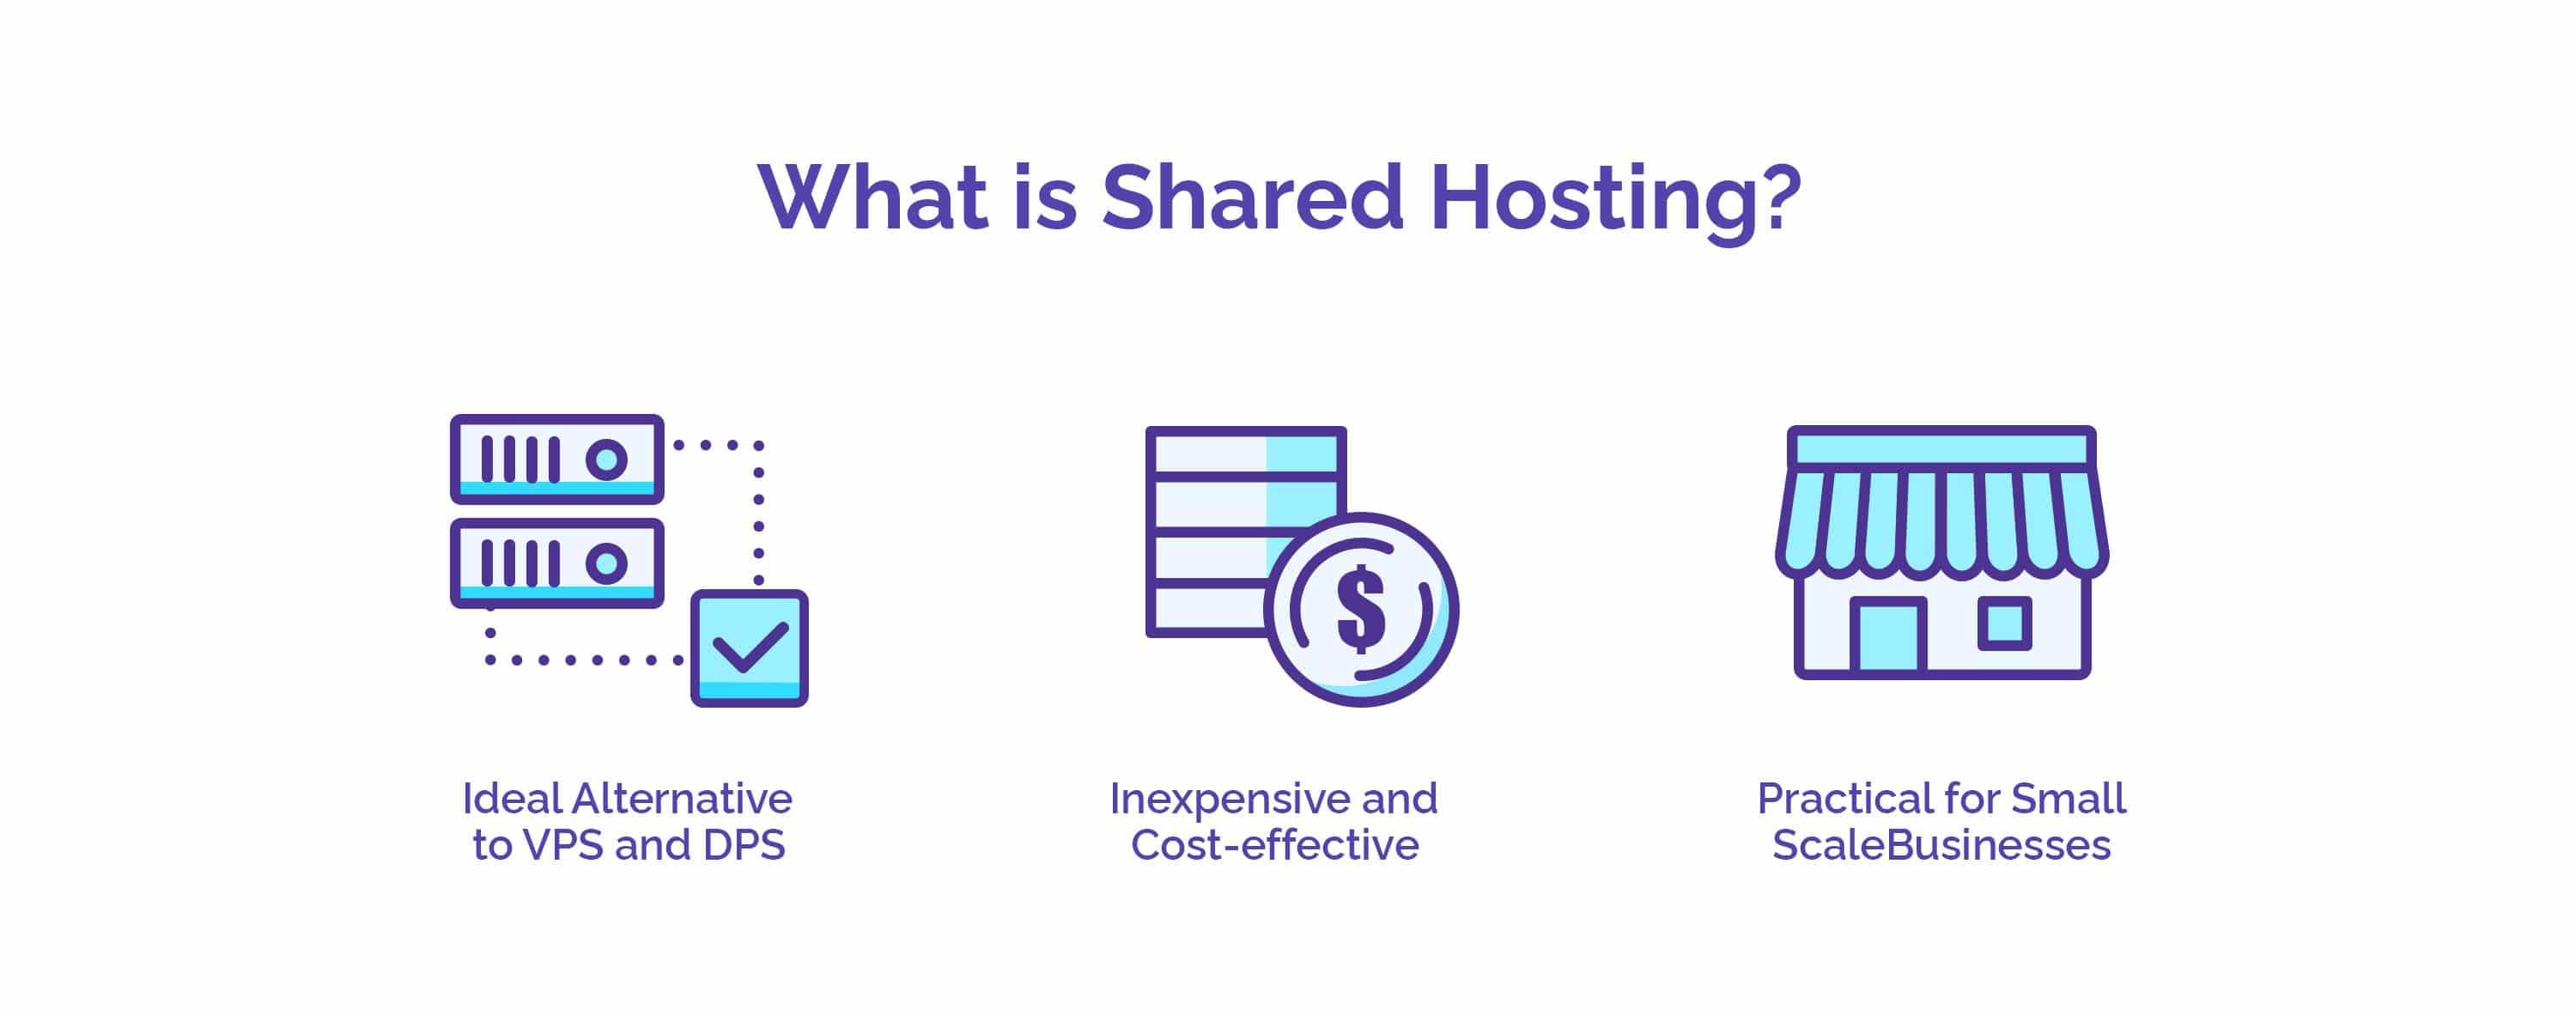 Shared Hosting: A Perfect Web Hosting Solution for Small